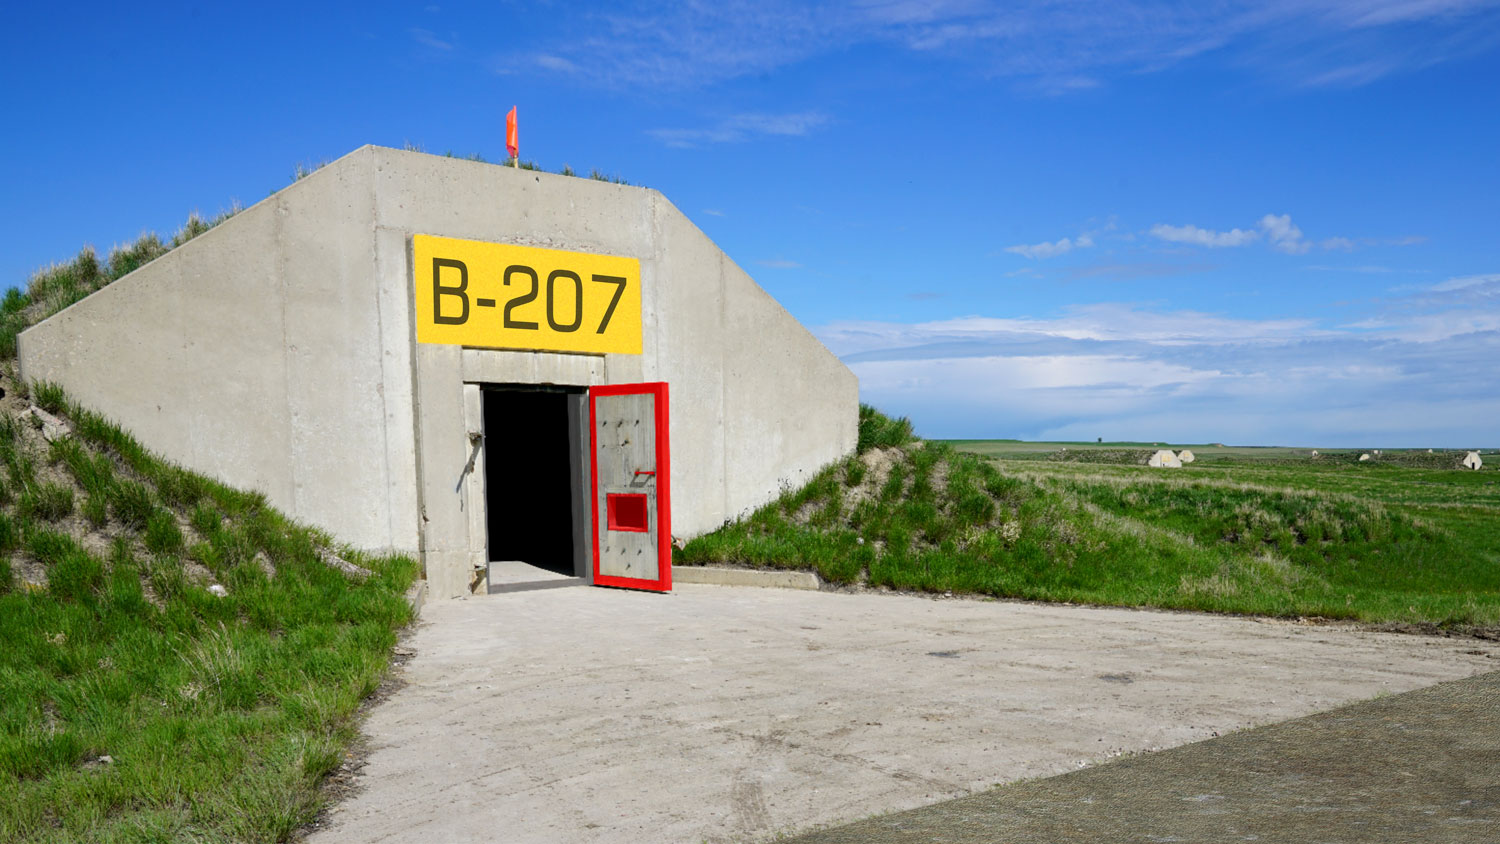 Bunkers to survive the end of the world in style